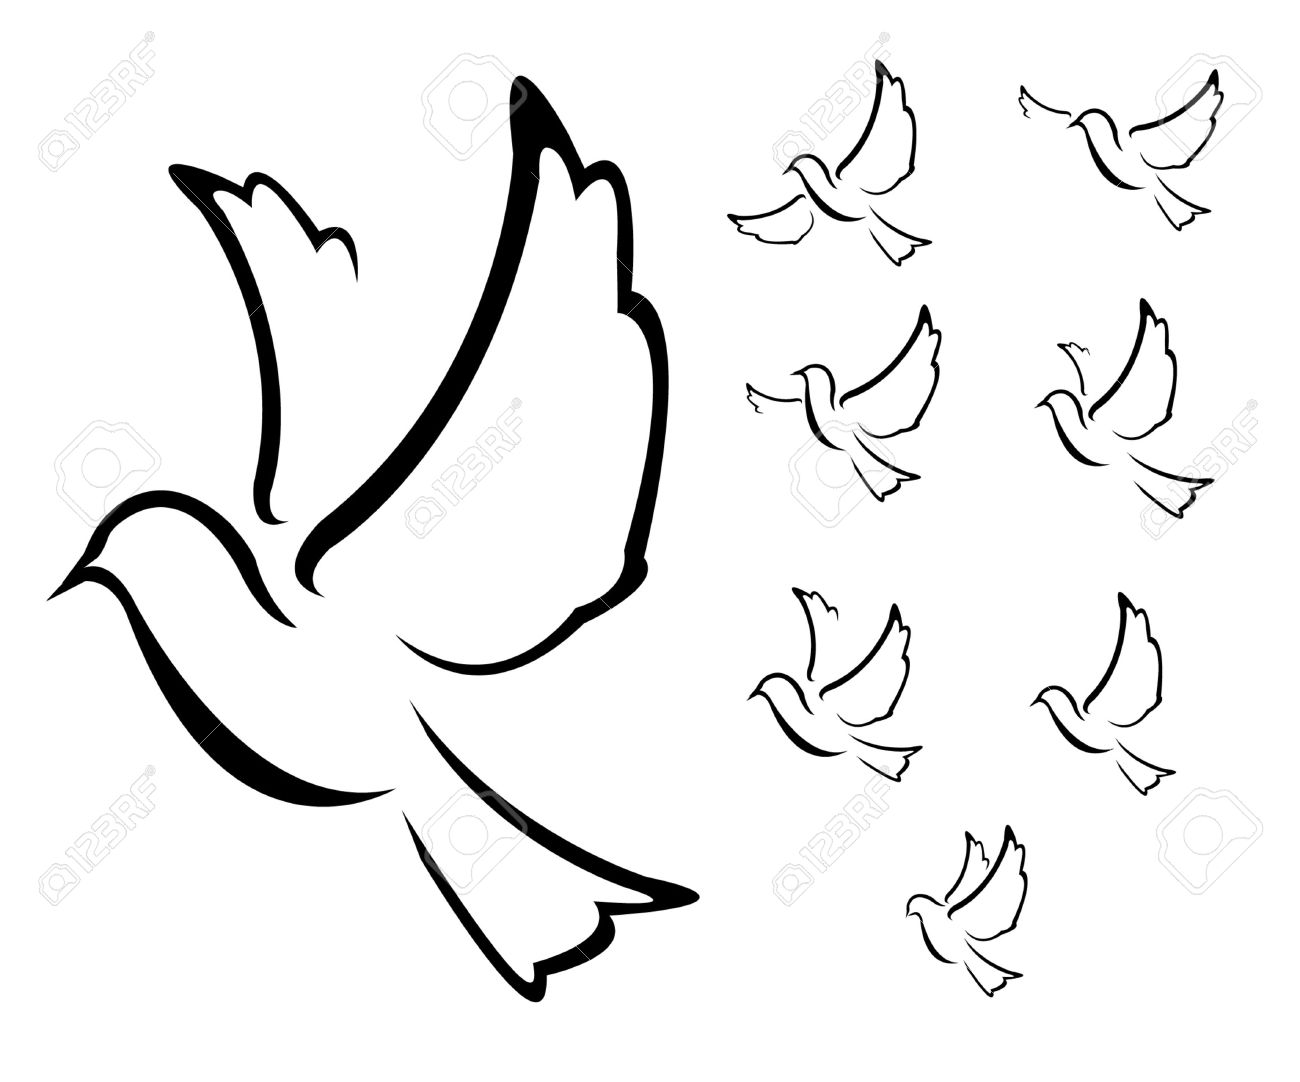 Dove Illustration Royalty Free Cliparts Vectors And Stock